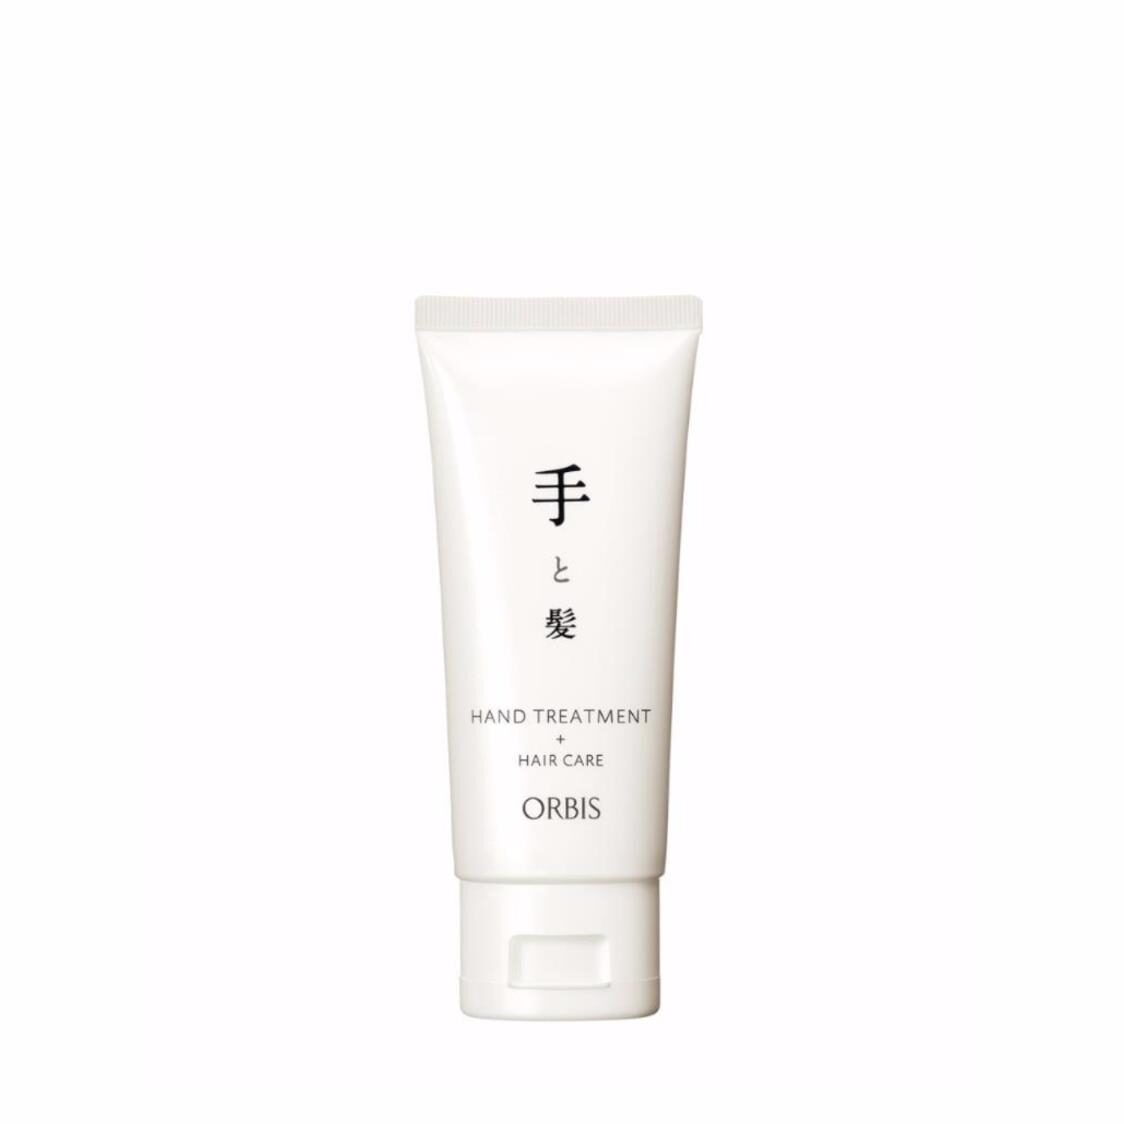 Hand Treatment  Haircare 80g